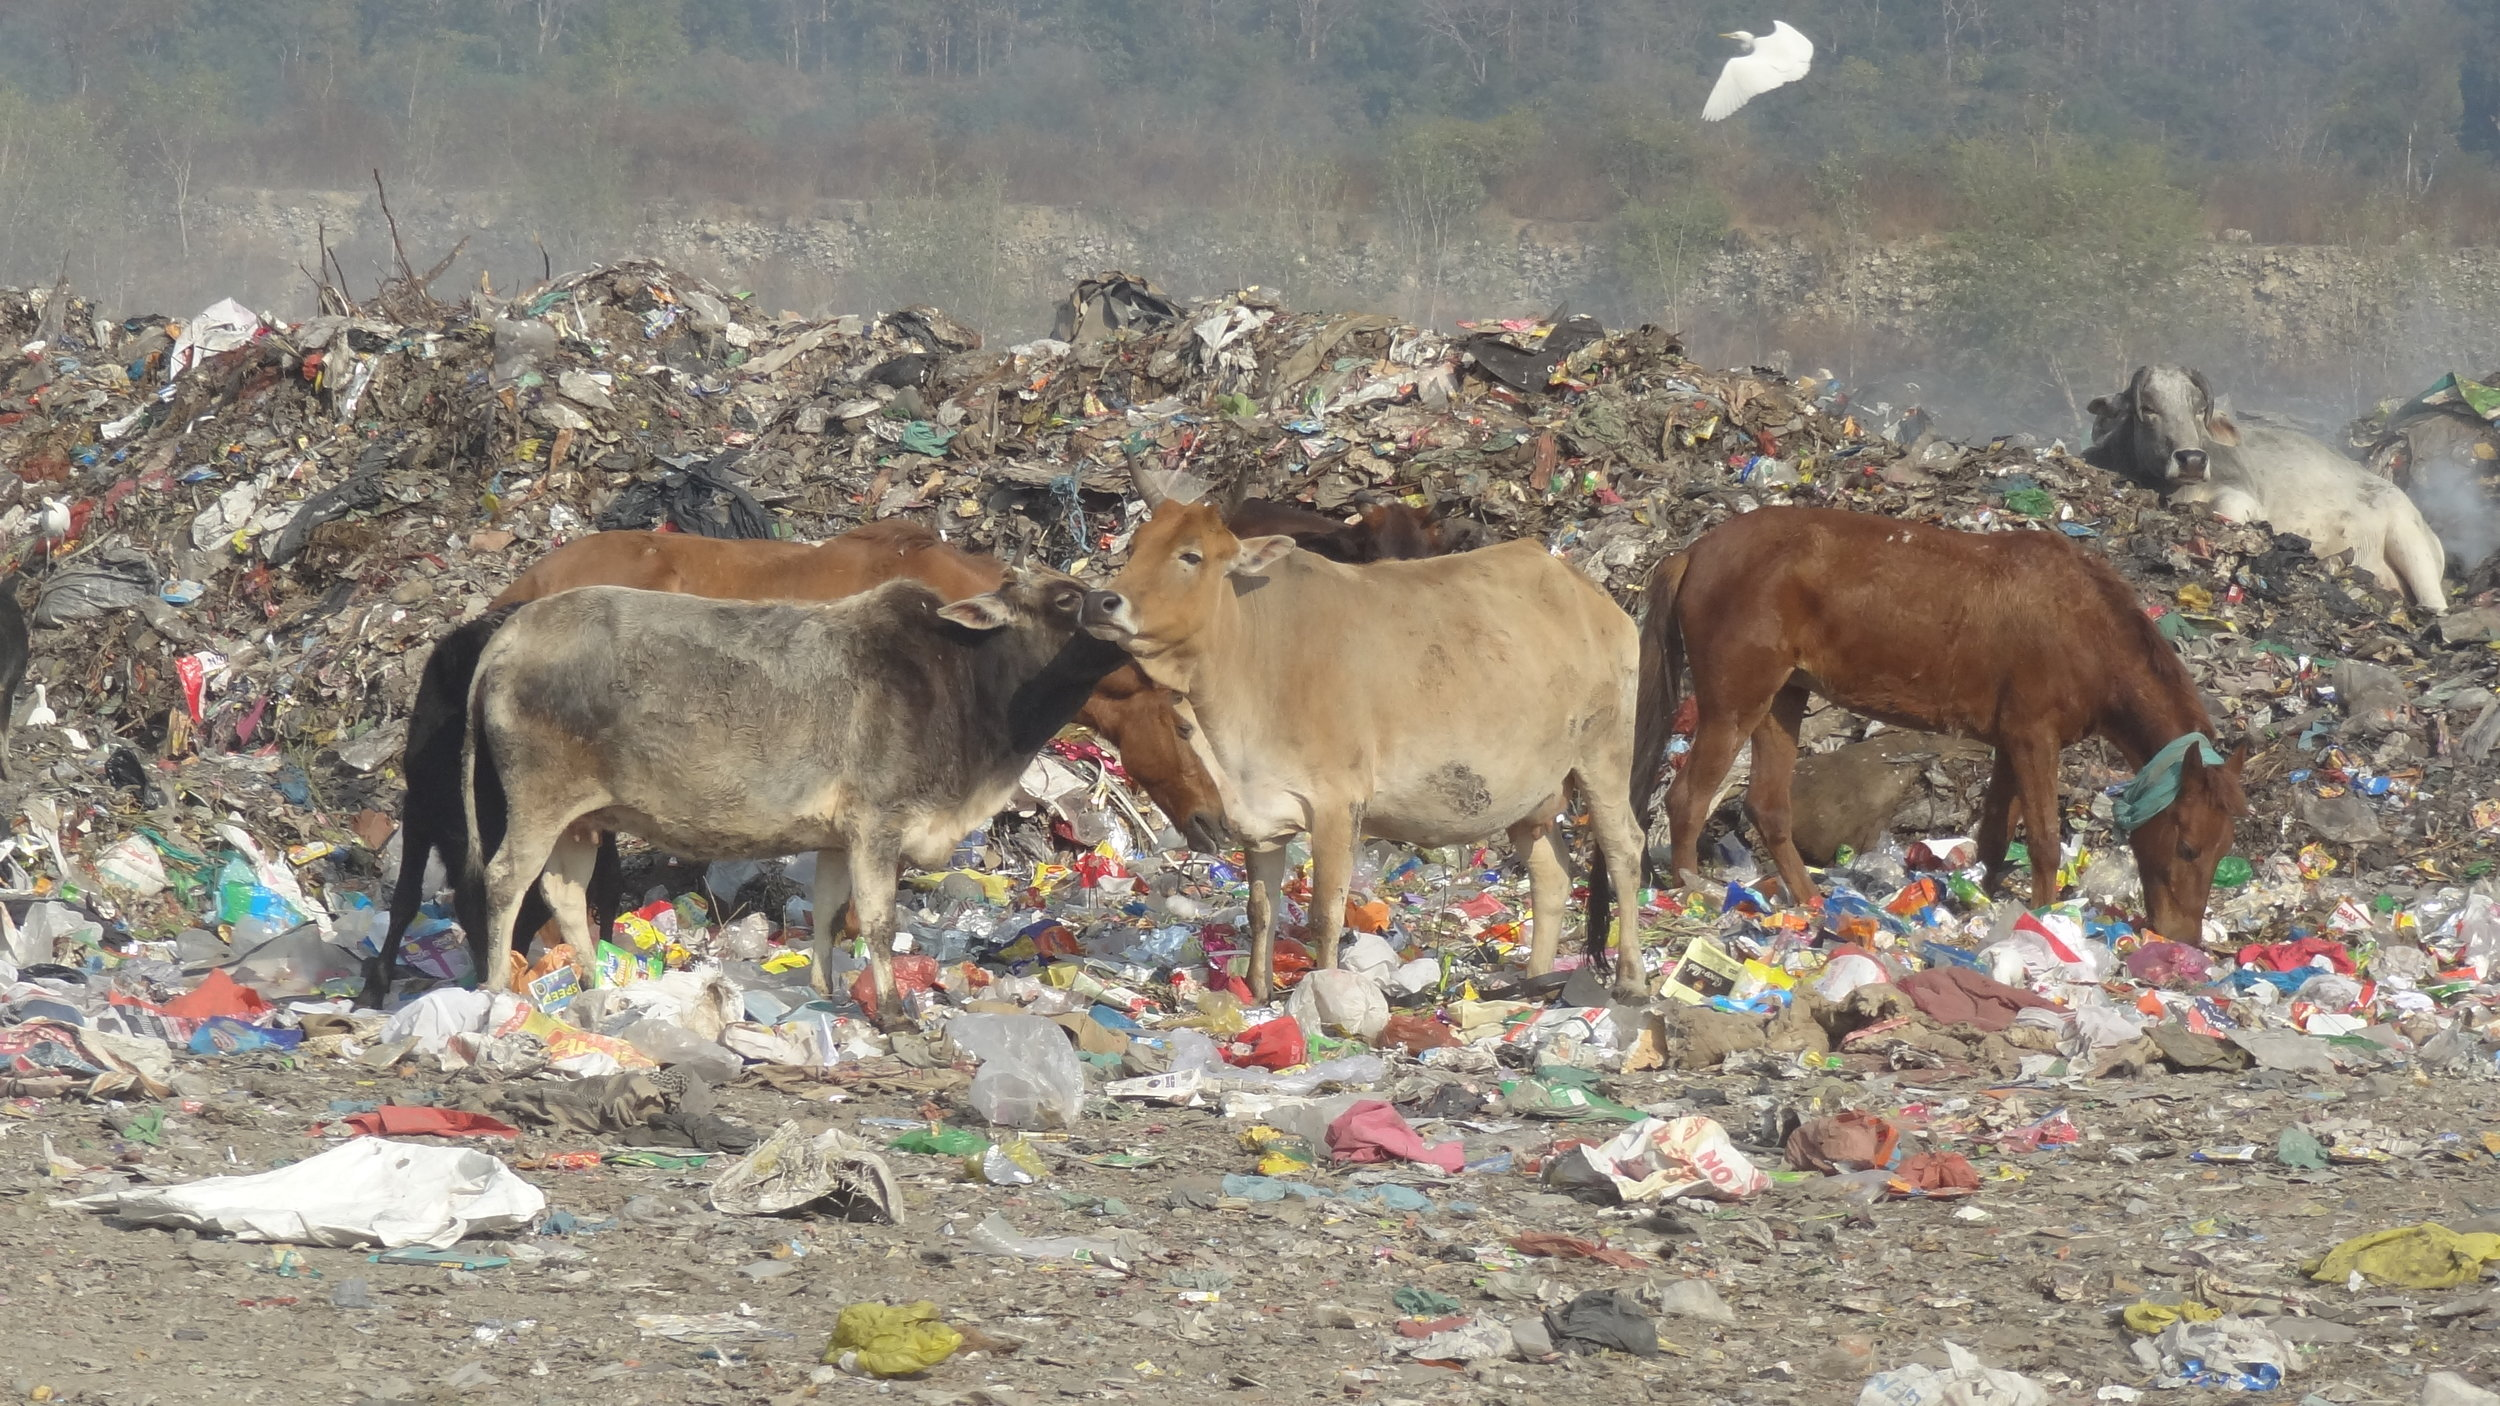 Cows feeding among (and on) plastic in a rural area of Uttarakhand.